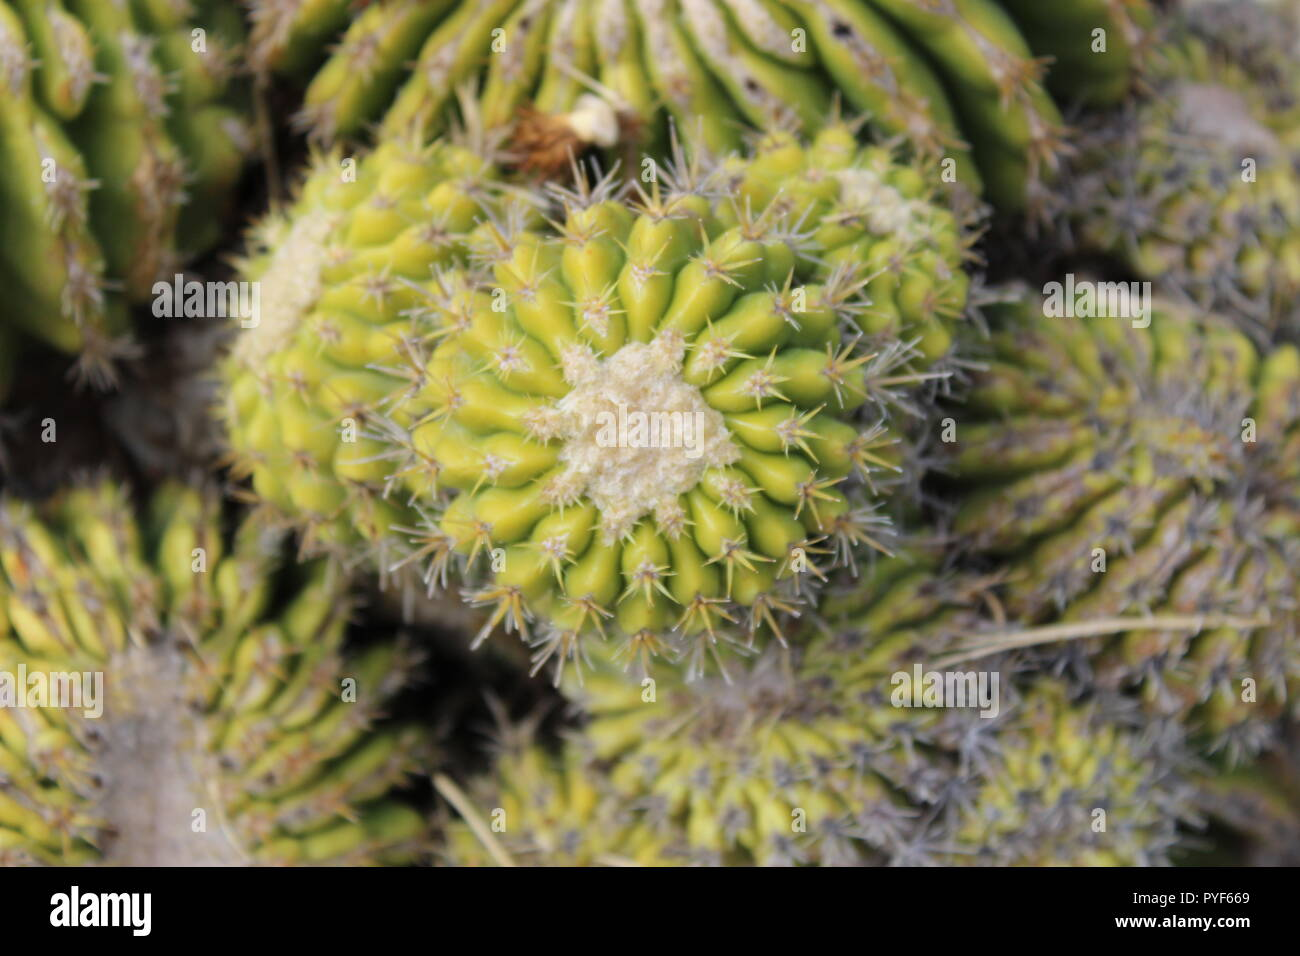 Dome-shaped cactus - Stock Image